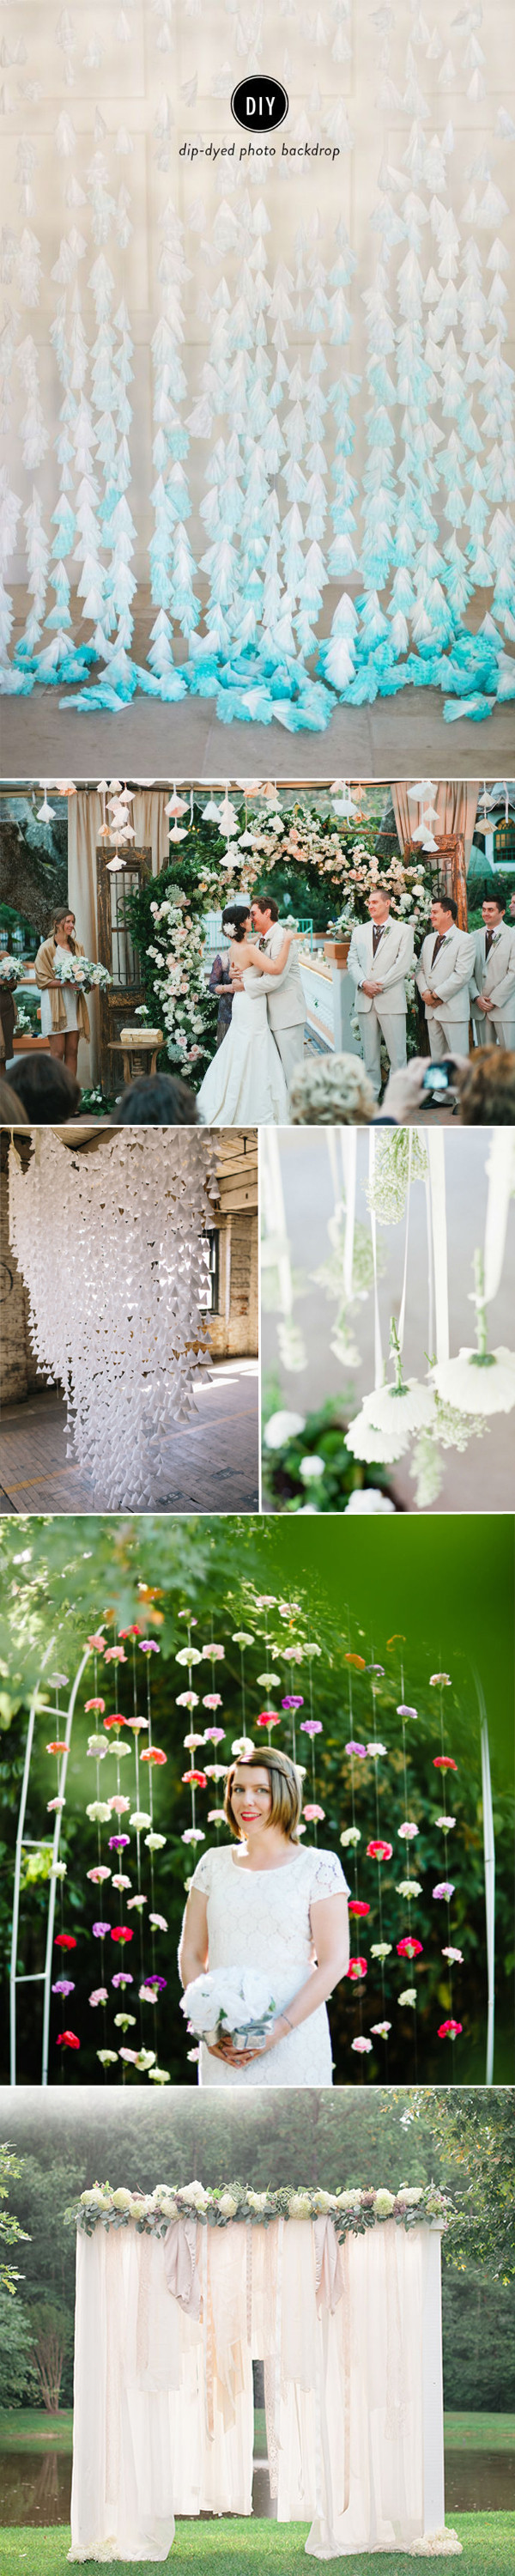 Best ideas about DIY Wedding Blog . Save or Pin 7 Charming DIY Wedding Decor Ideas We Love Now.